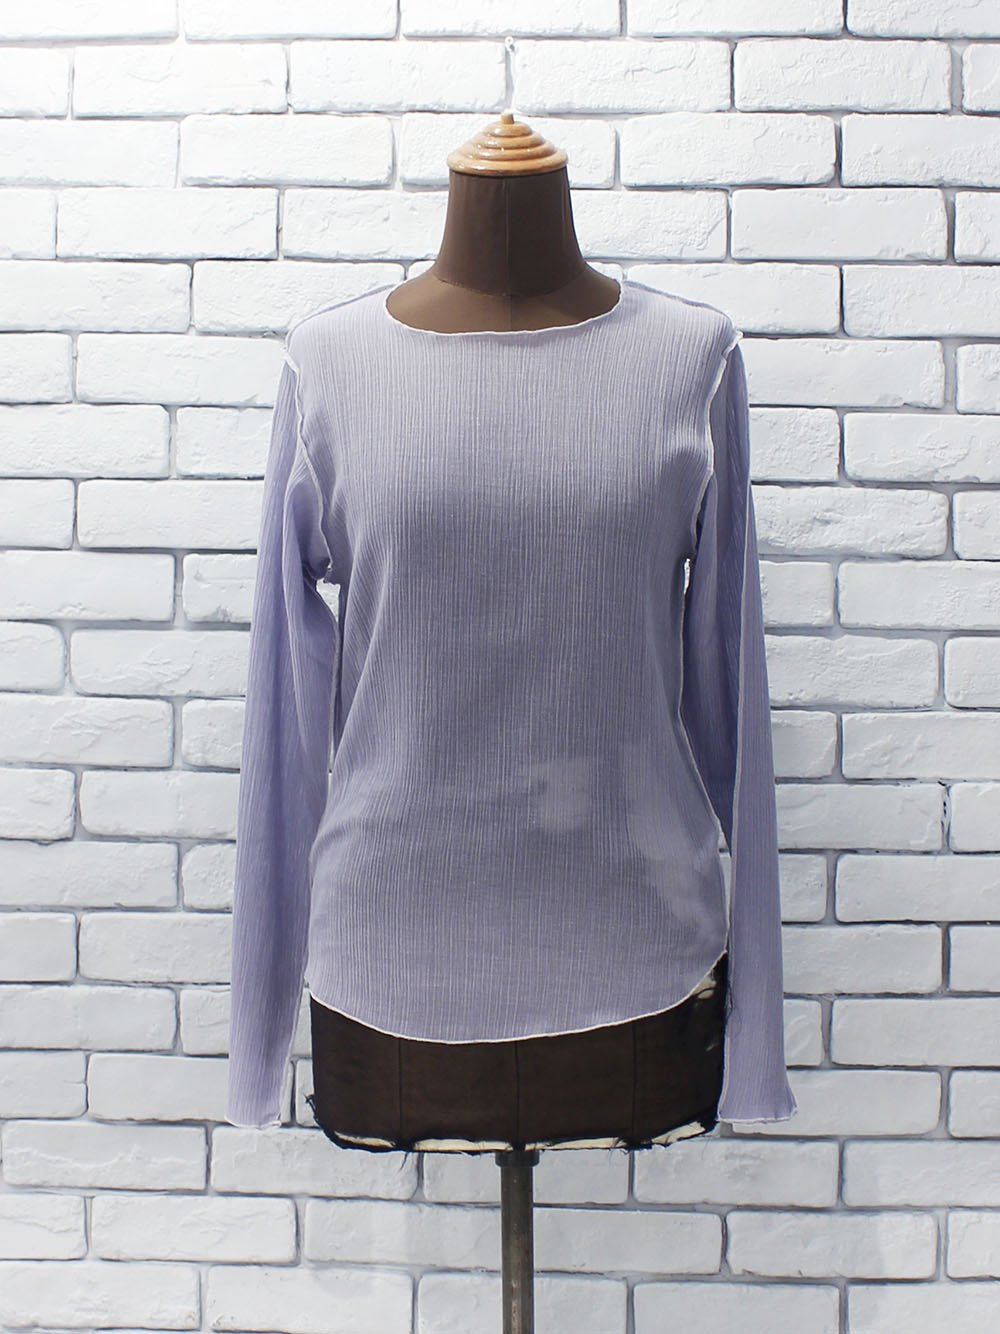 "<img class='new_mark_img1' src='https://img.shop-pro.jp/img/new/icons8.gif' style='border:none;display:inline;margin:0px;padding:0px;width:auto;' />DOMENICO+SAVIO "" long sleeve sheer tops  (pale blue) """